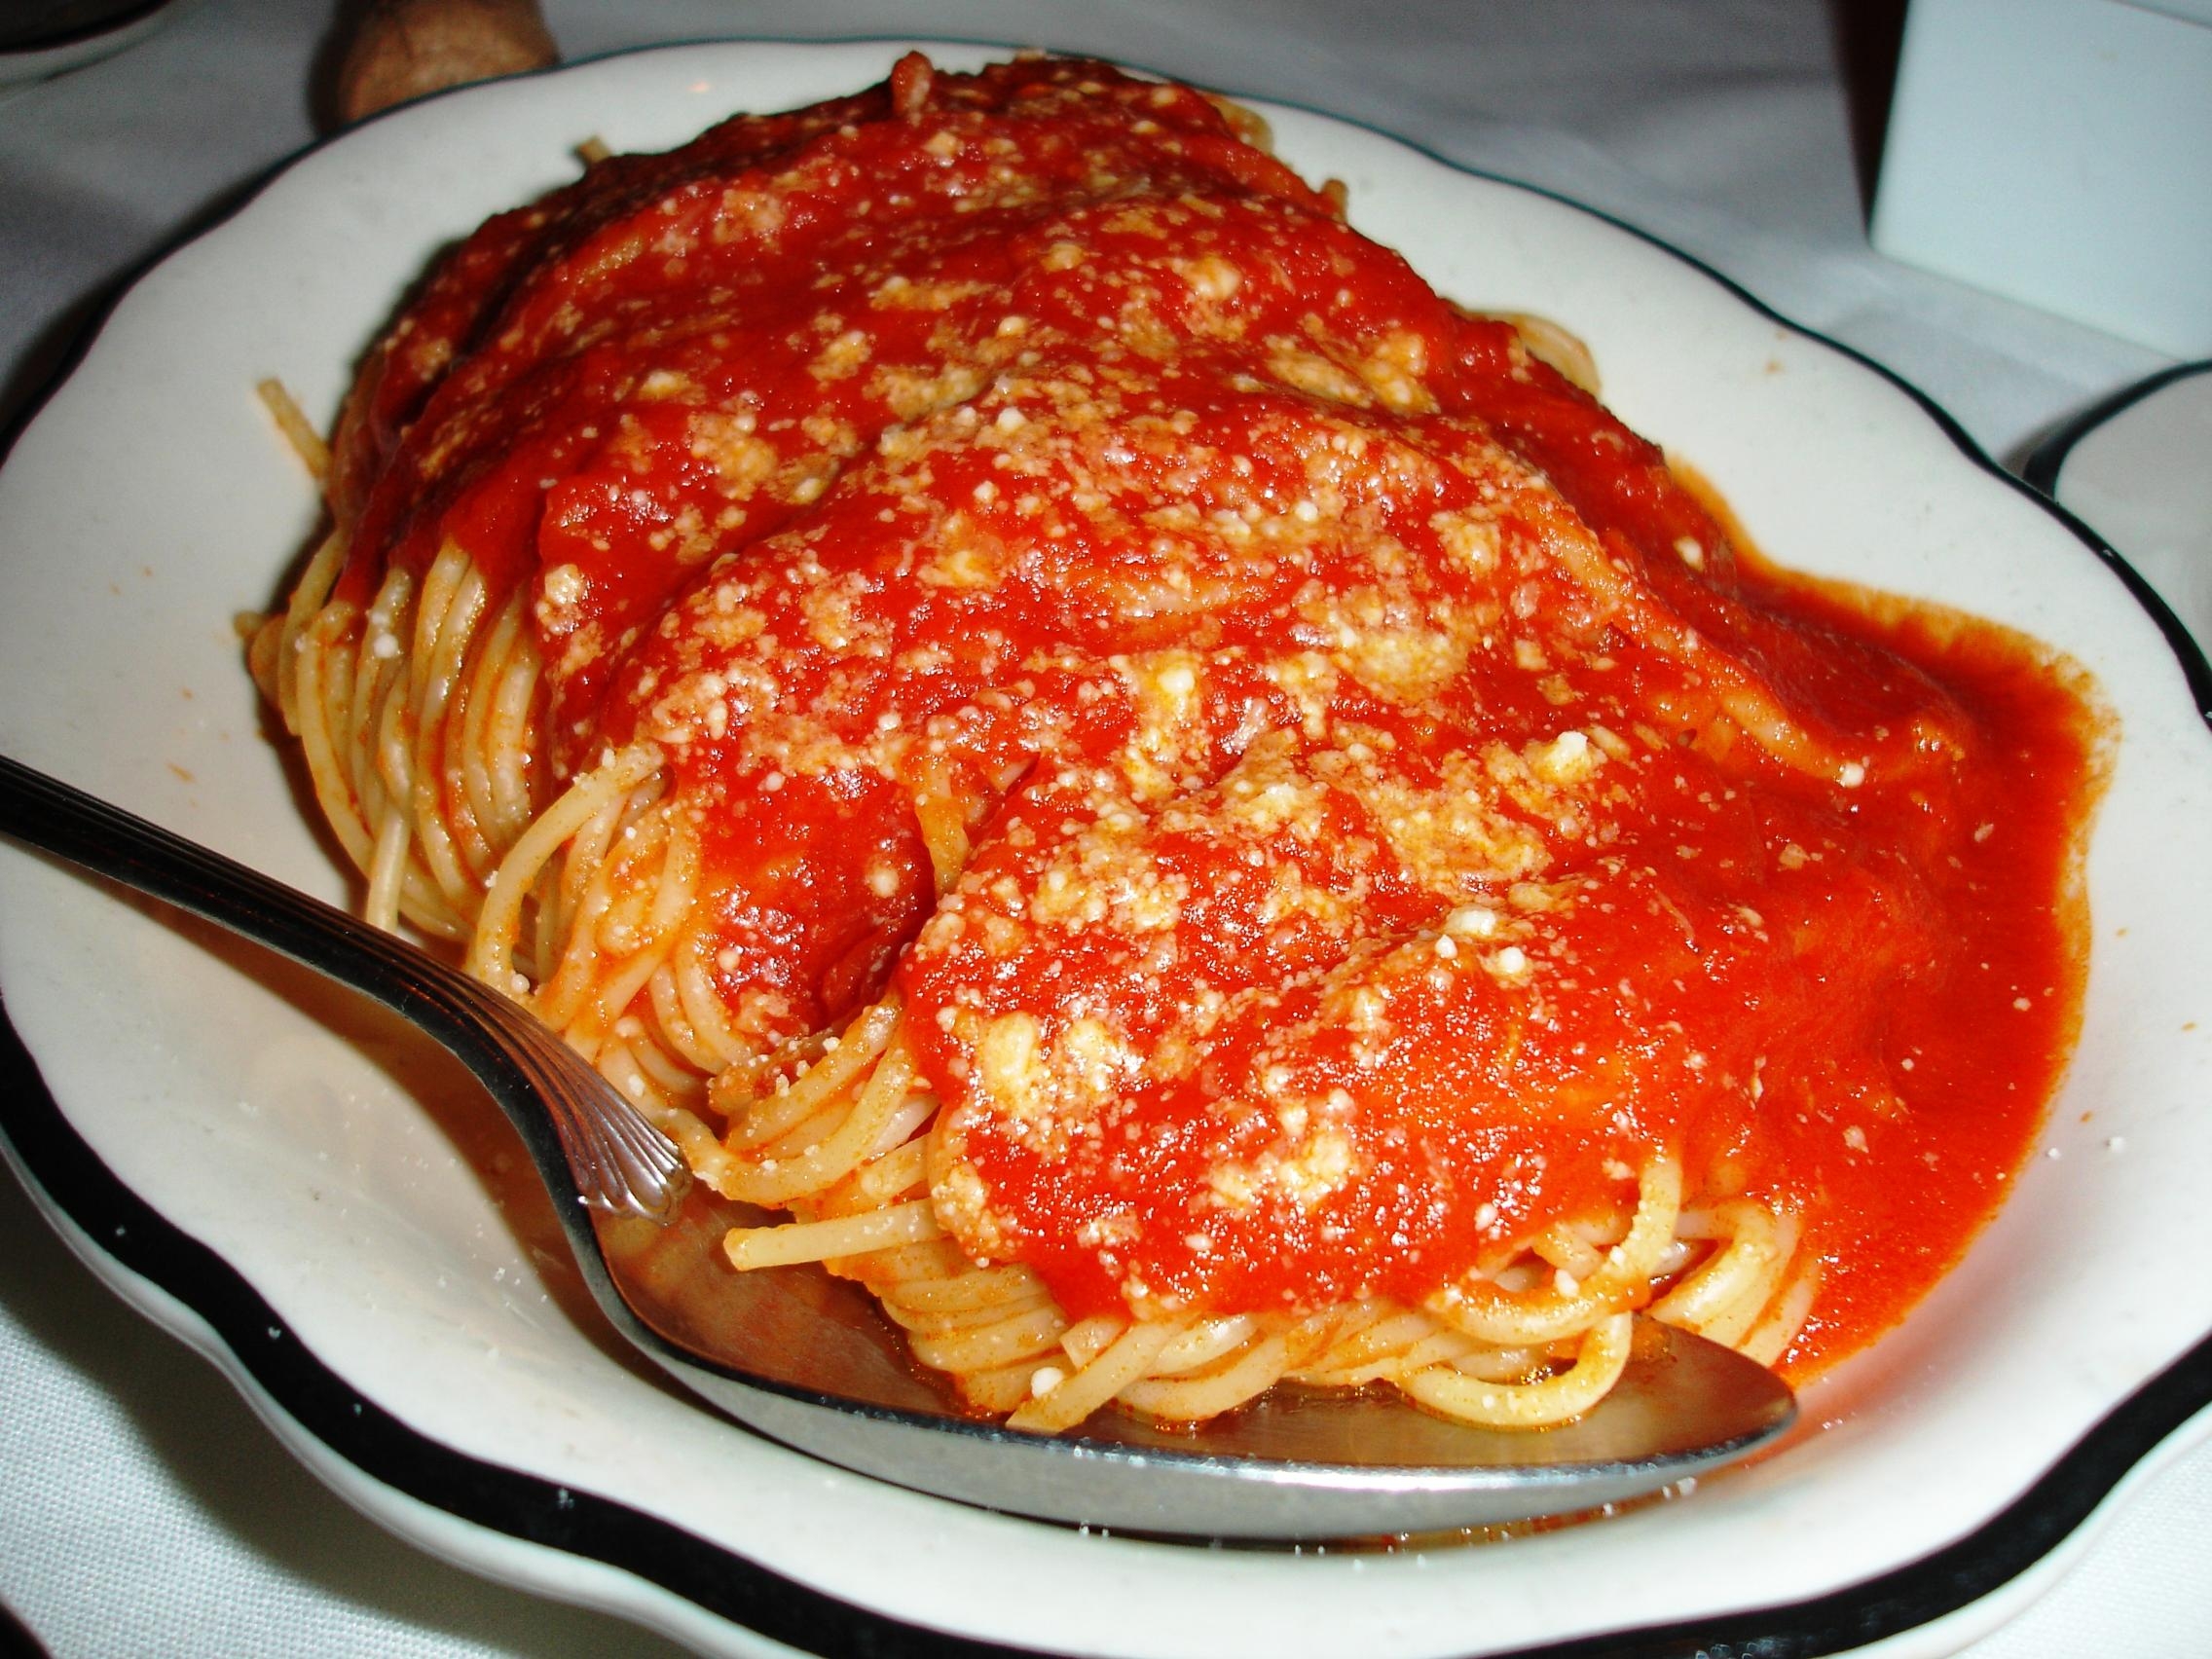 Non-pasta entrees come with a huge side of pasta.